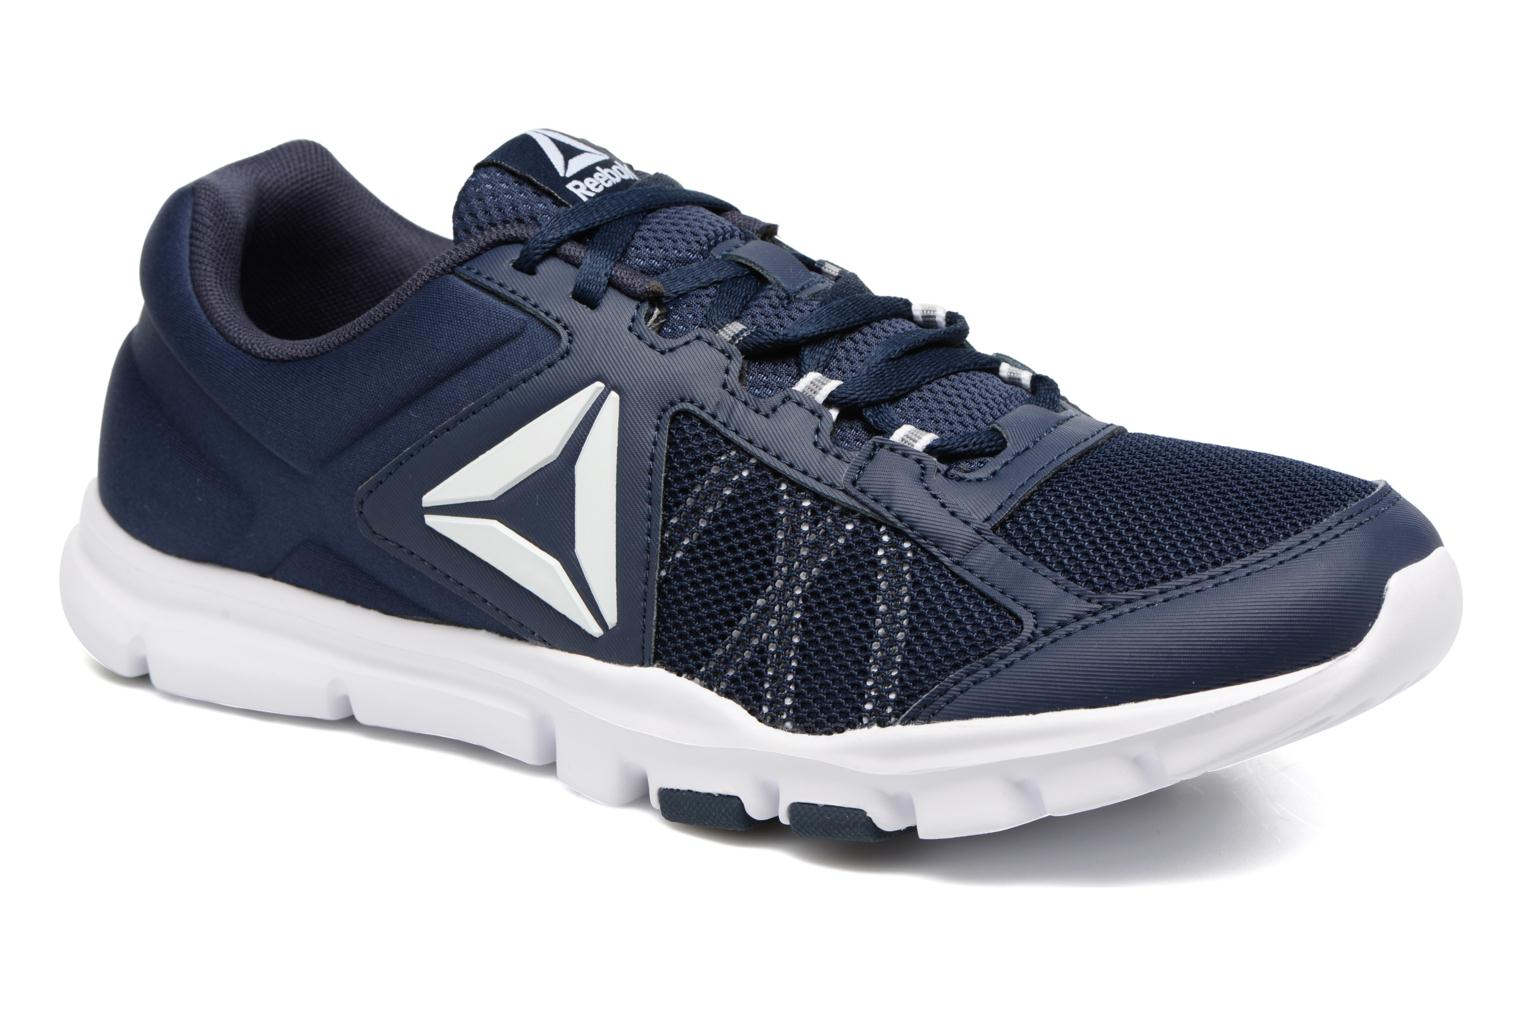 Yourflex Train 9.0 Collegiate Navy/White